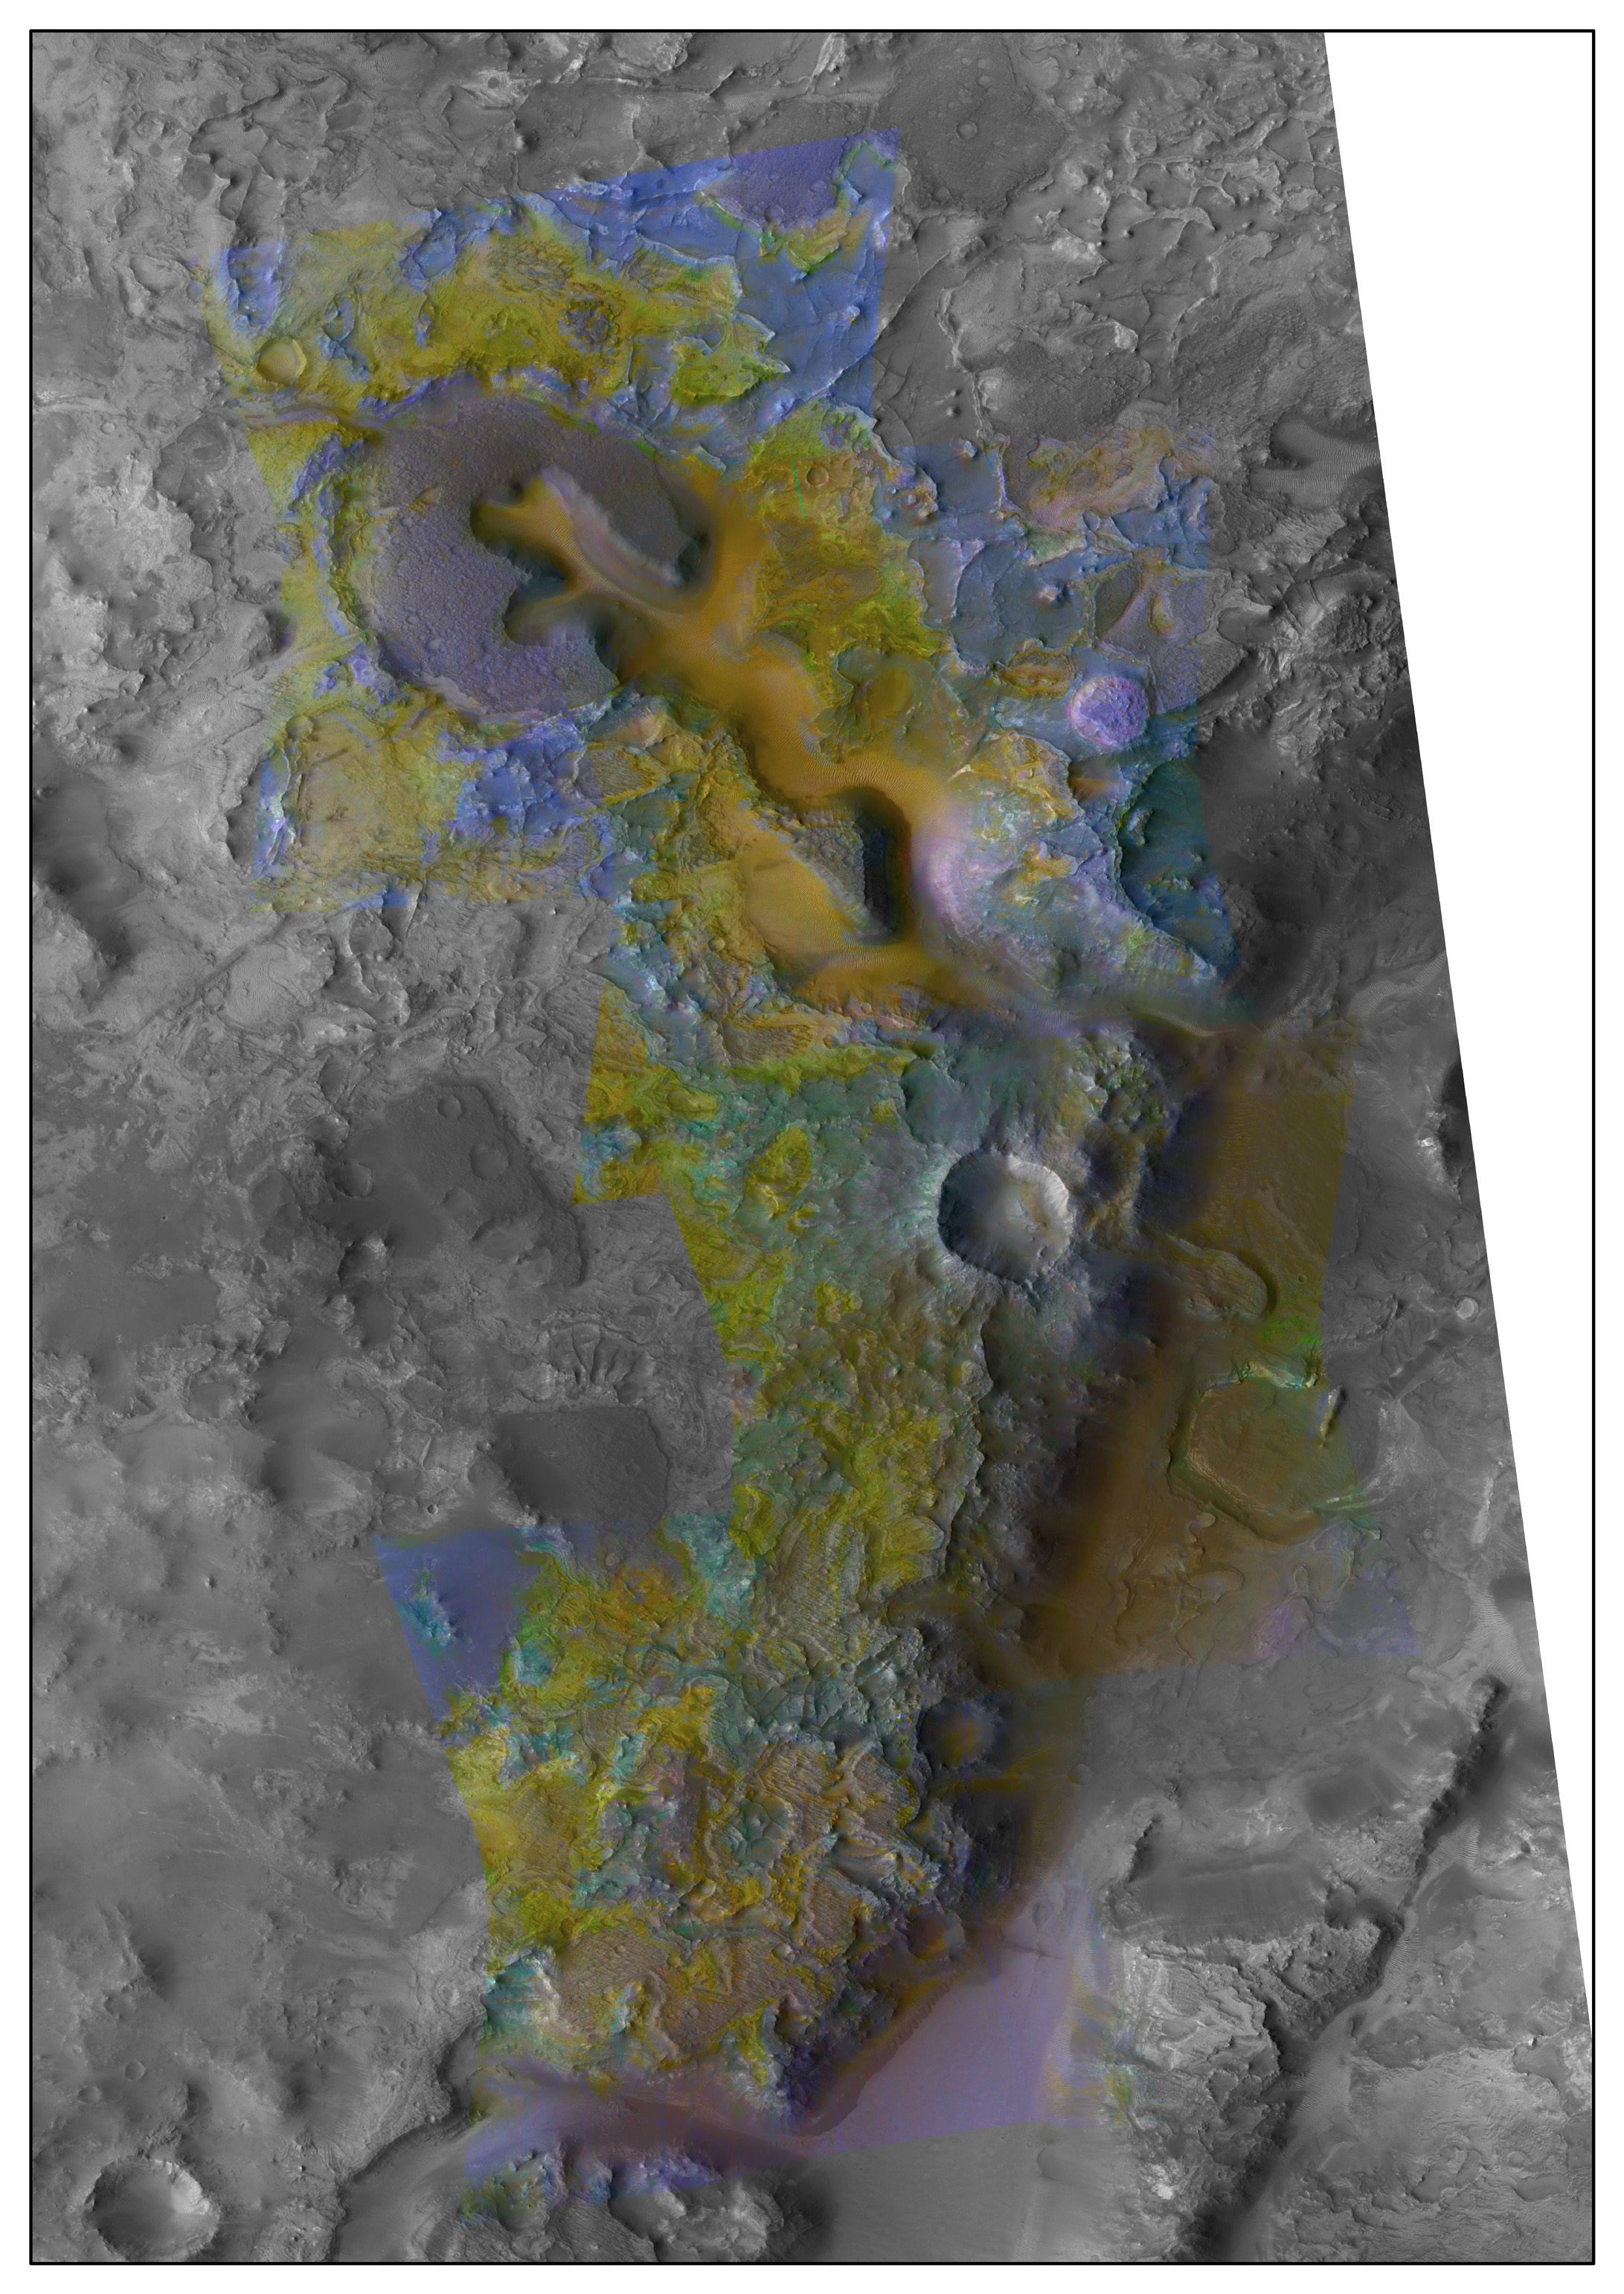 Carbonated Mesas: A Brown-led team found carbonate-bearing rocks in the sides of eroded mesas in the Nili Fossae region. Scientists believe the carbonates may  have been formed at the surface when olivine-rich rocks were exposed, and altered, by running water.